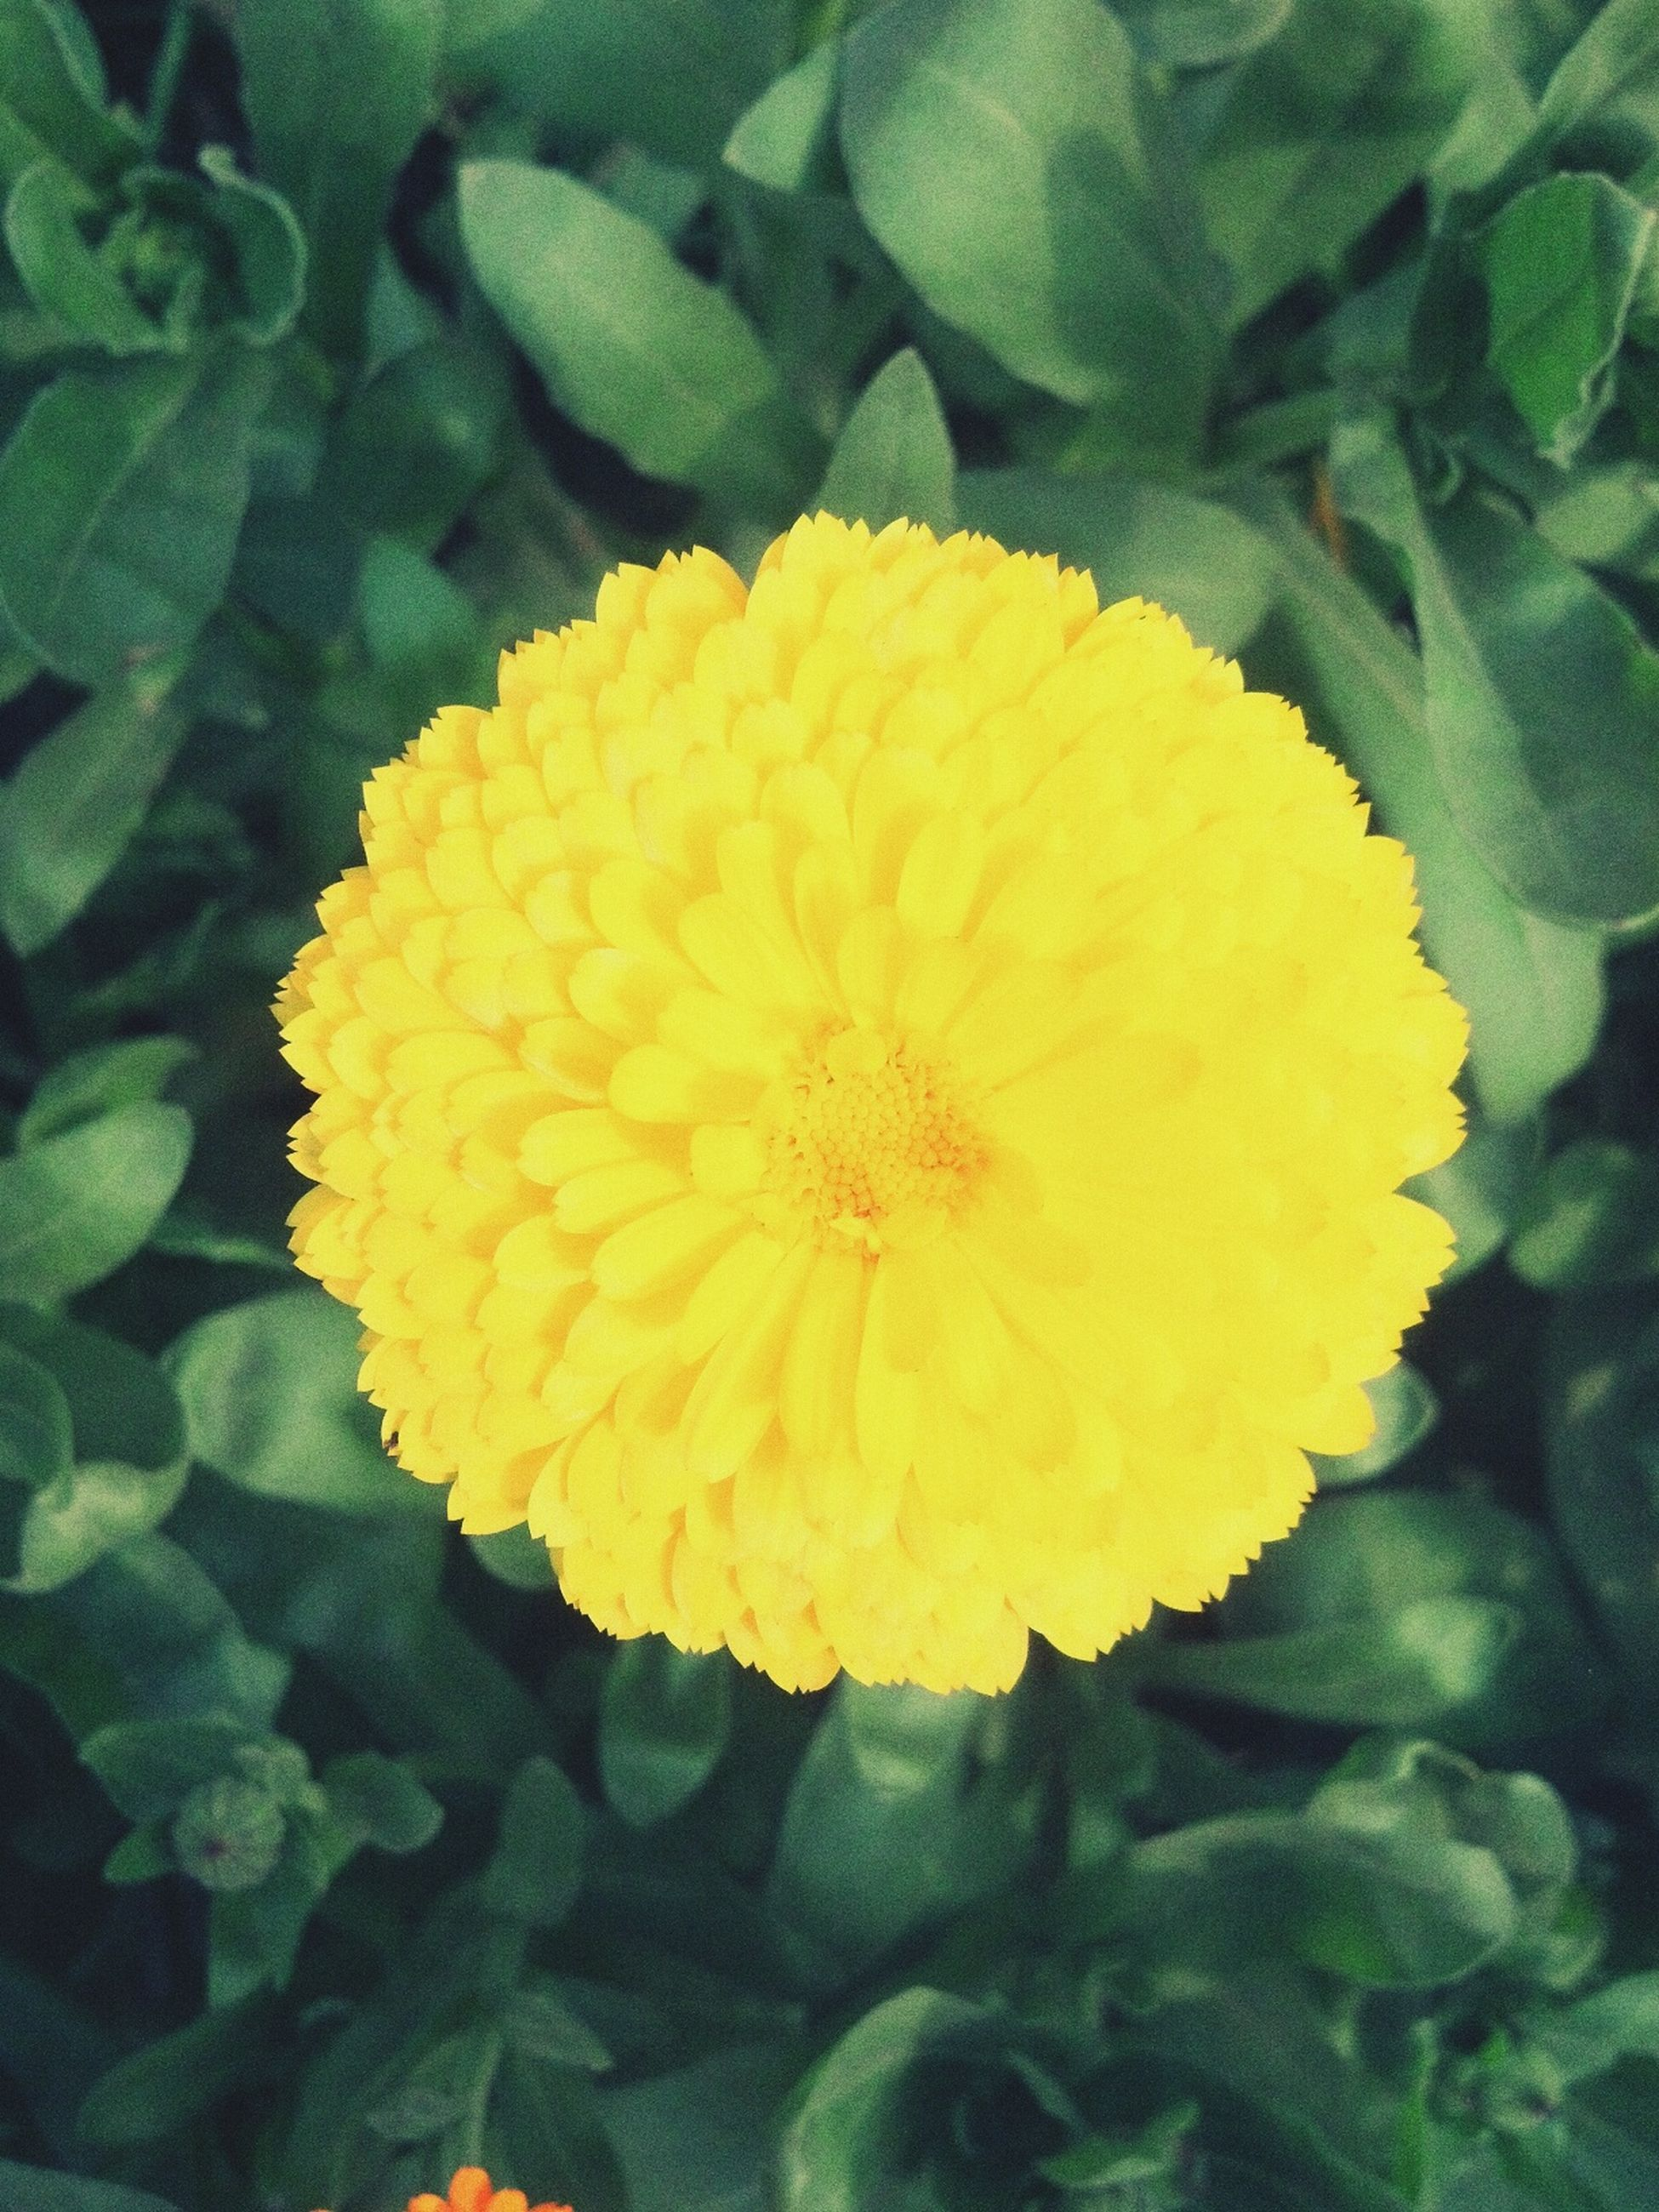 flower, freshness, yellow, flower head, fragility, petal, growth, beauty in nature, nature, single flower, close-up, plant, blooming, leaf, high angle view, in bloom, green color, blossom, pollen, outdoors